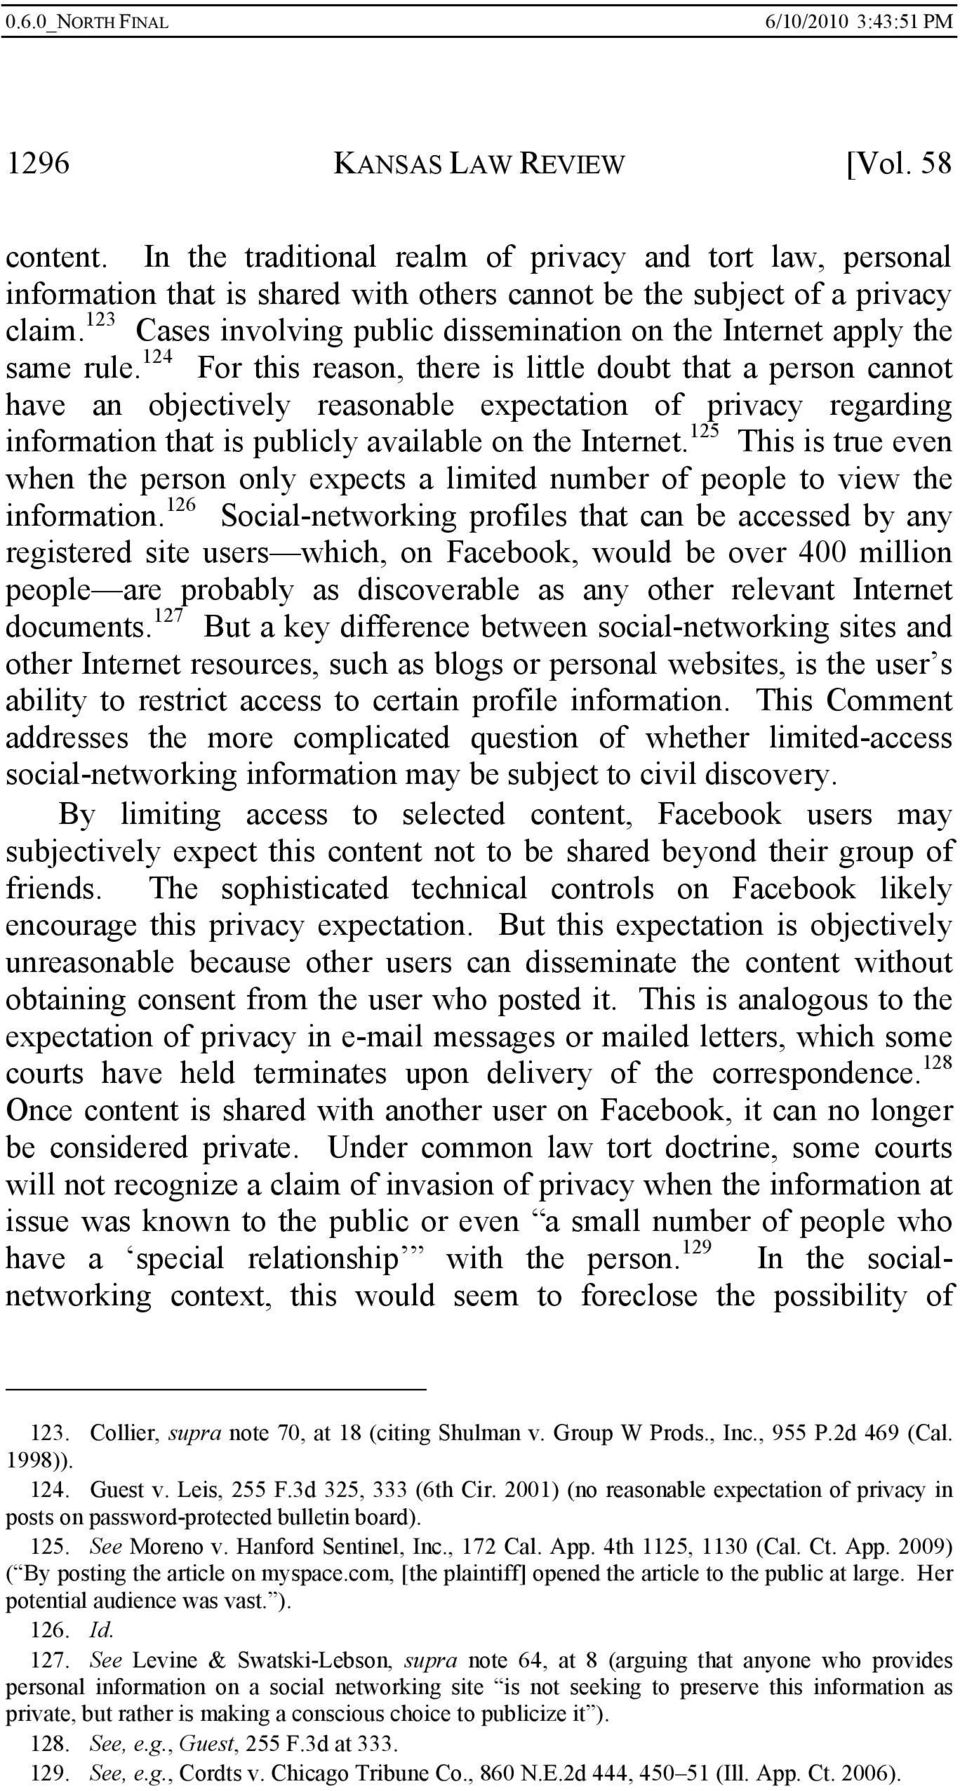 124 For this reason, there is little doubt that a person cannot have an objectively reasonable expectation of privacy regarding information that is publicly available on the Internet.